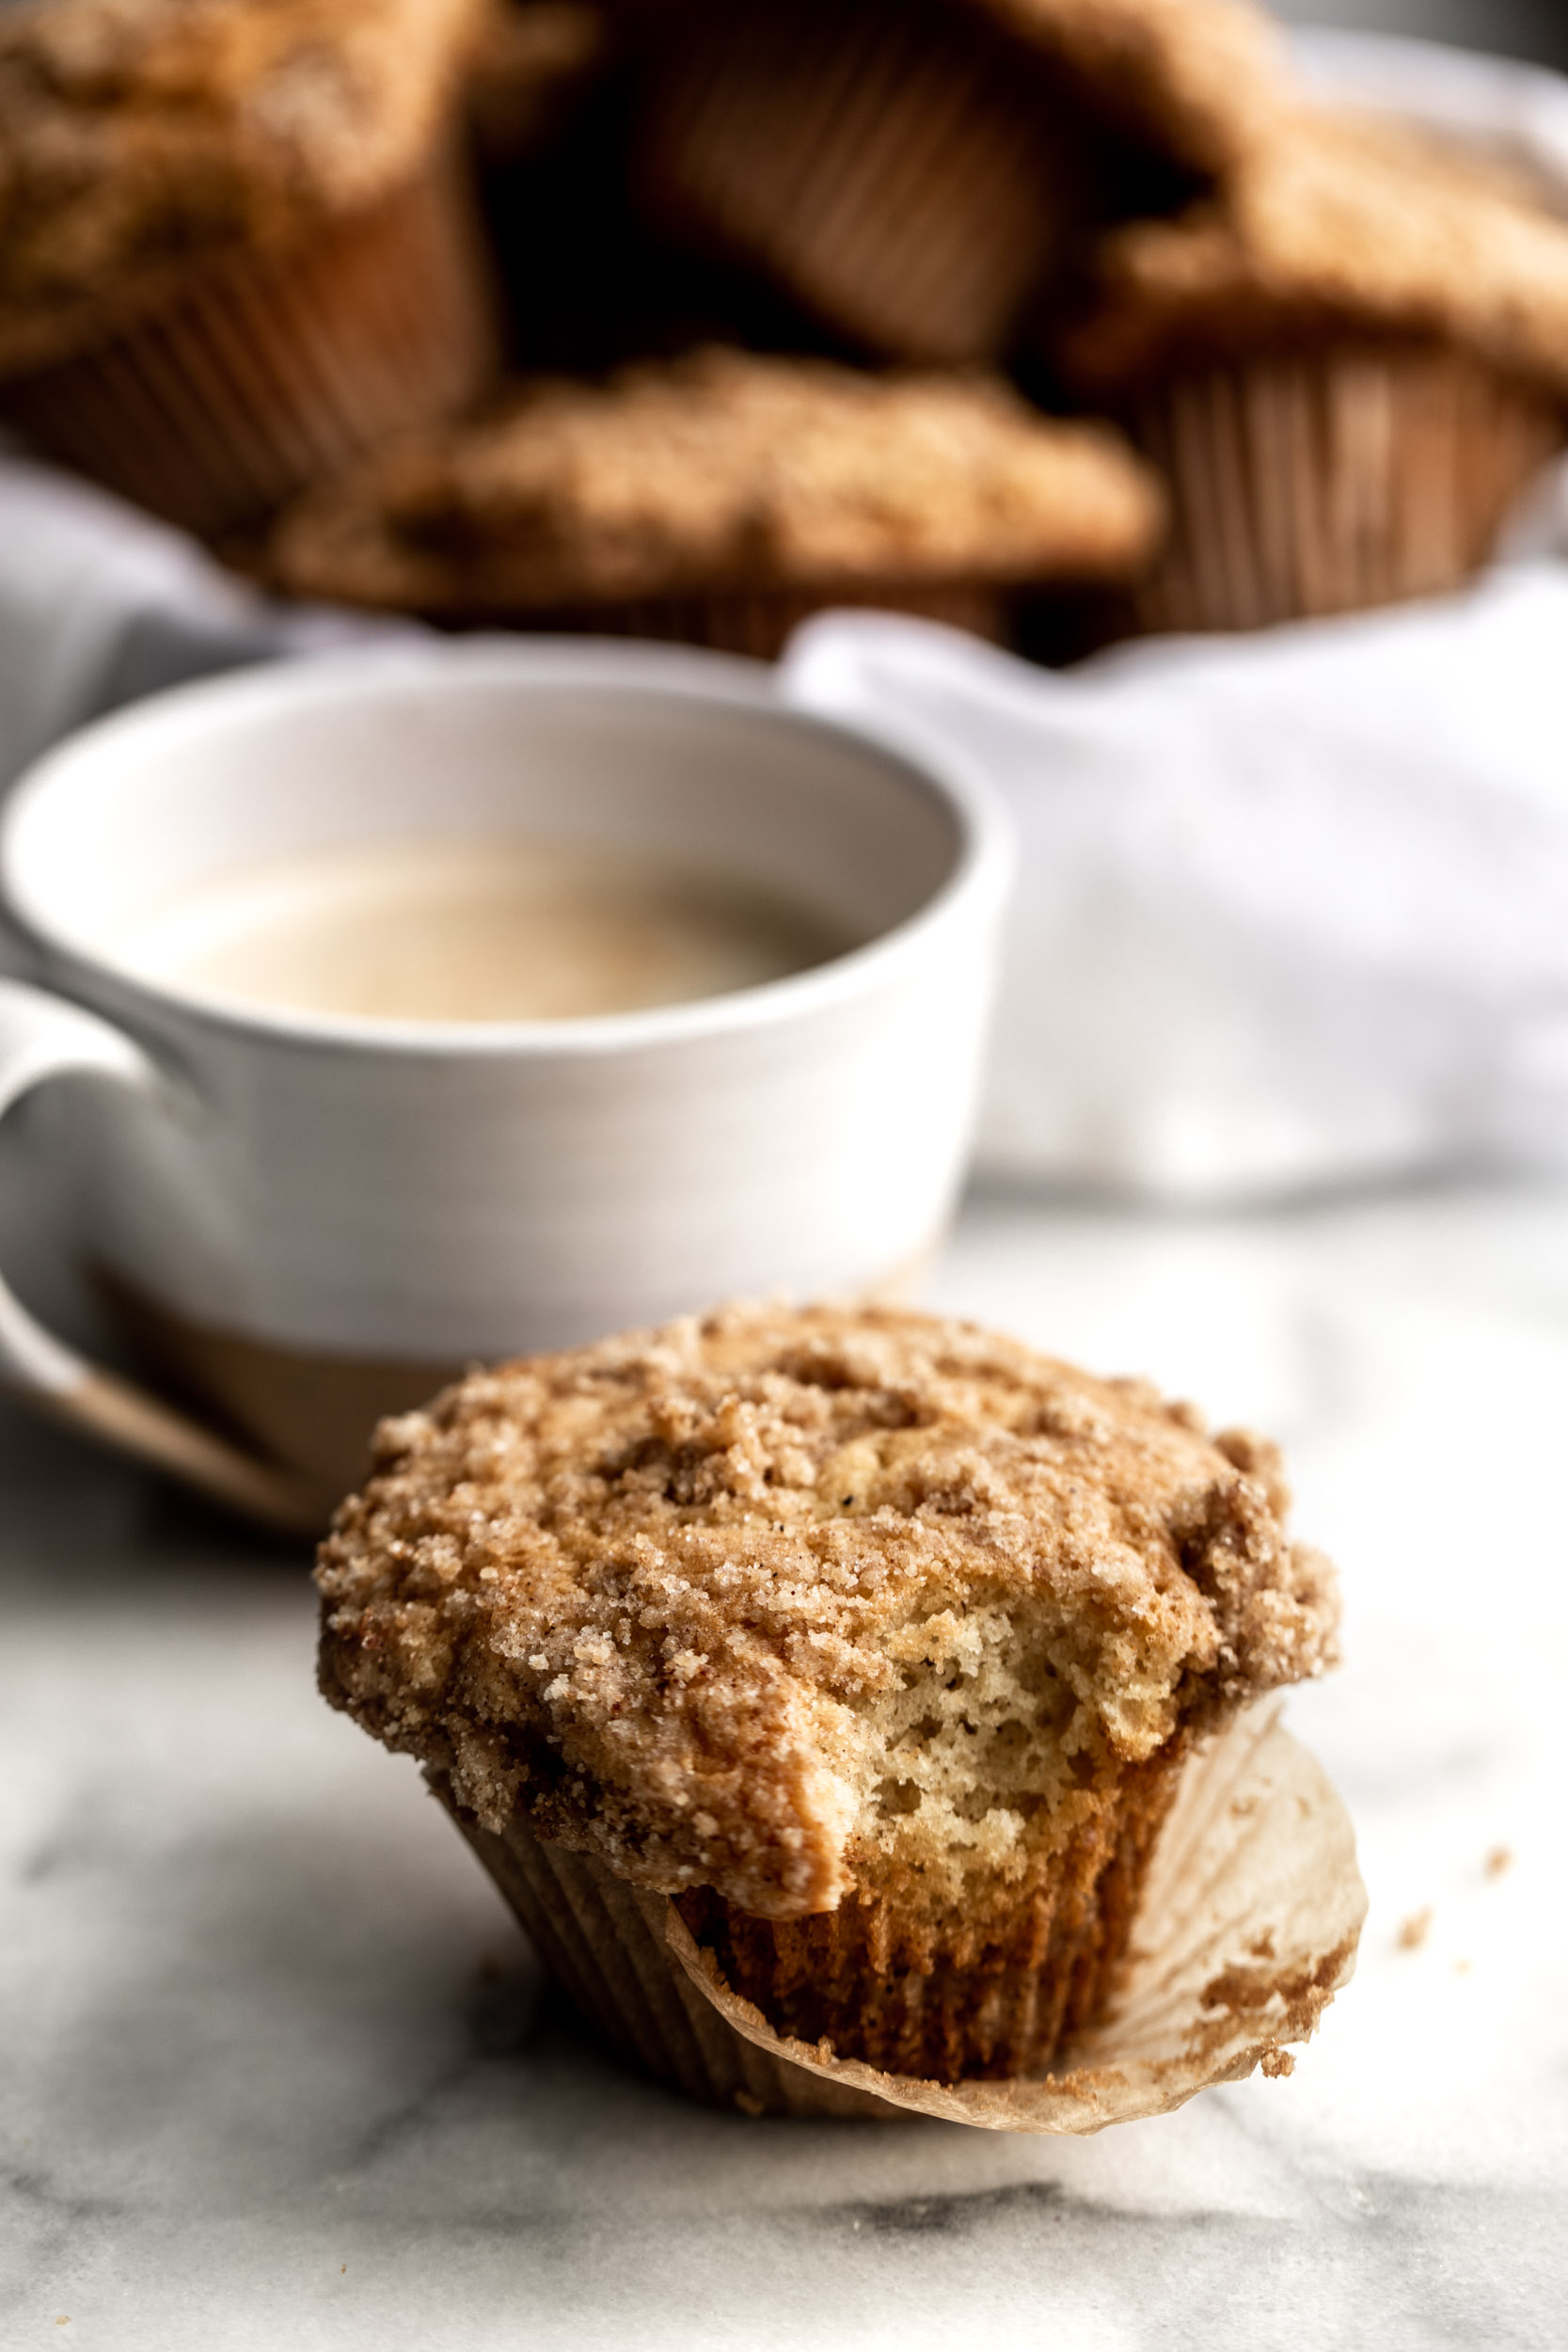 This coffee cake muffin recipe is made with streusel topping with the addition of sour cream to keep the muffins moist.